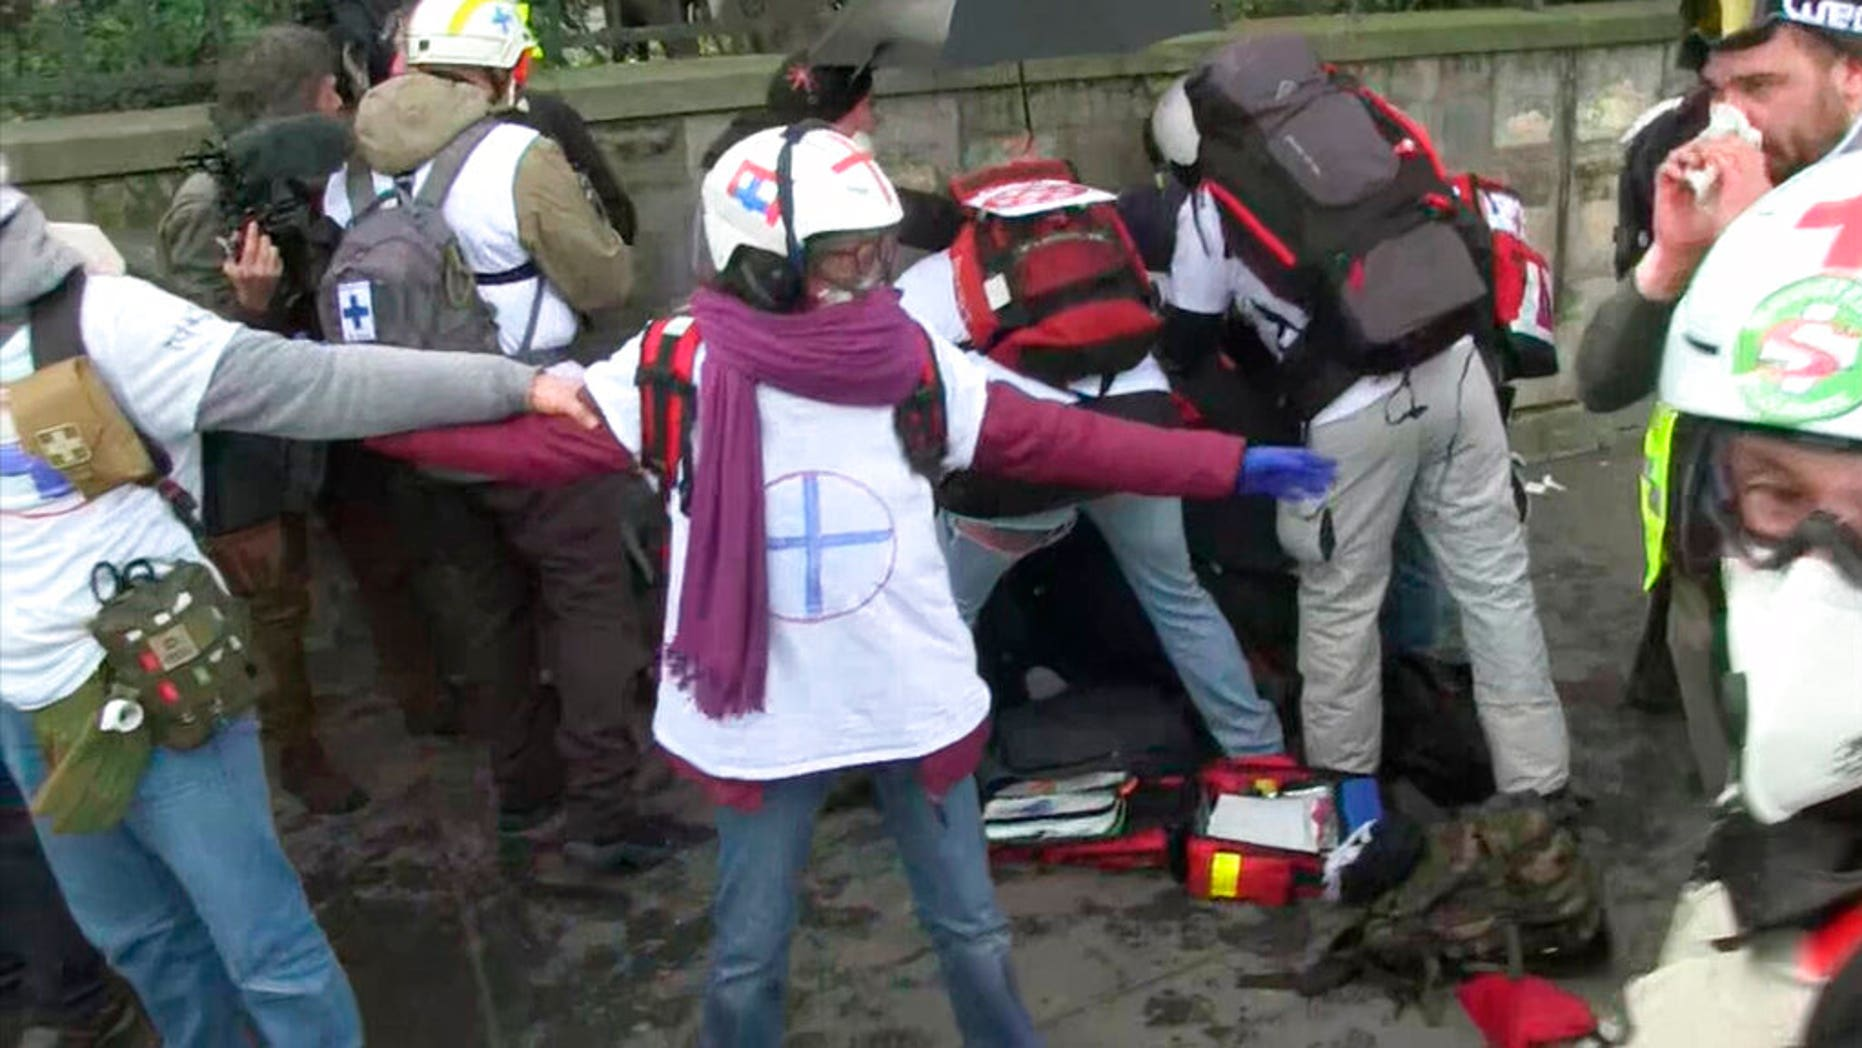 """Rescue services look after a Yellow Vest demonstrator who sustained a serious hand injury on Saturday, February 9, 201<div class=""""e3lan e3lan-in-post1""""><script async src=""""//pagead2.googlesyndication.com/pagead/js/adsbygoogle.js""""></script> <!-- Text_Display_Responsive --> <ins class=""""adsbygoogle""""      style=""""display:block""""      data-ad-client=""""ca-pub-6192903739091894""""      data-ad-slot=""""3136787391""""      data-ad-format=""""auto""""      data-full-width-responsive=""""true""""></ins> <script> (adsbygoogle = window.adsbygoogle 